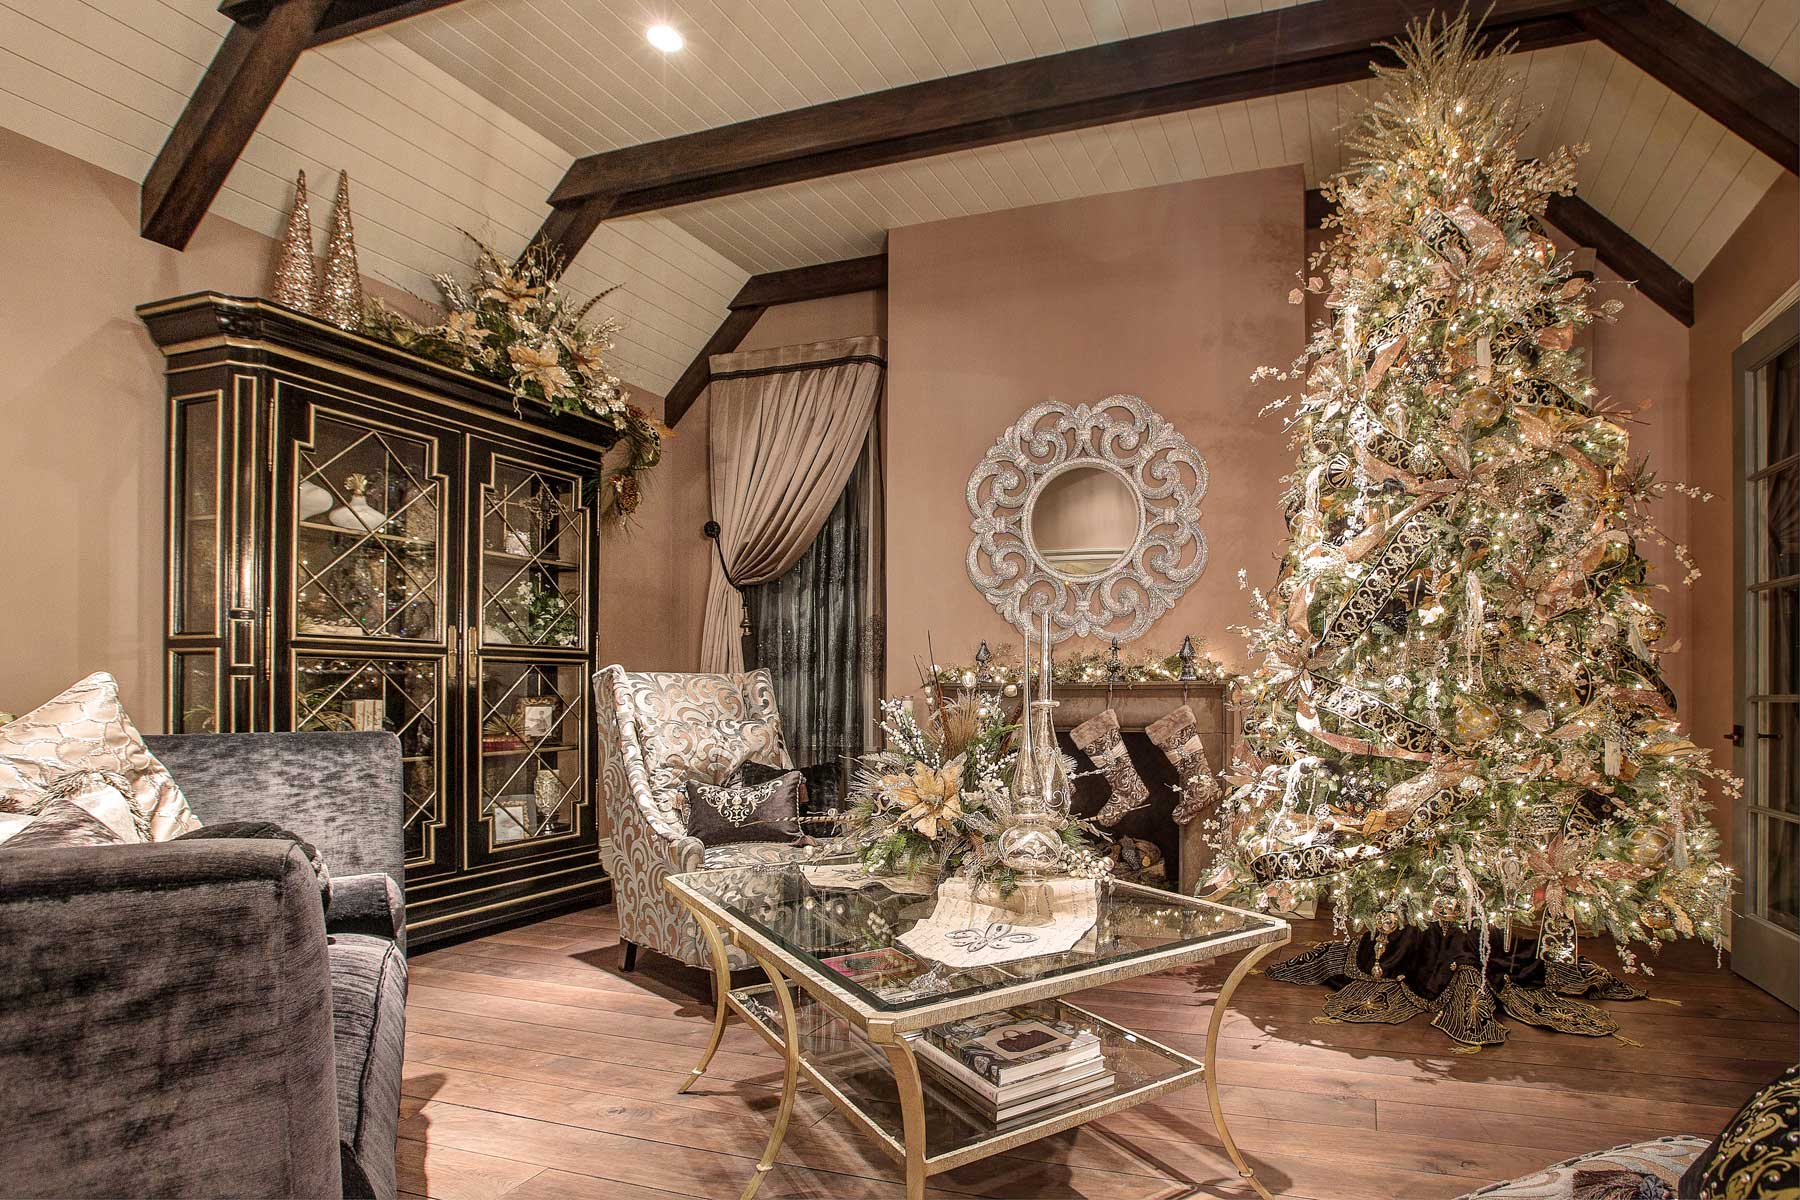 Christmas home decor linly designs - Pictures of homes decorated for christmas on the inside ...